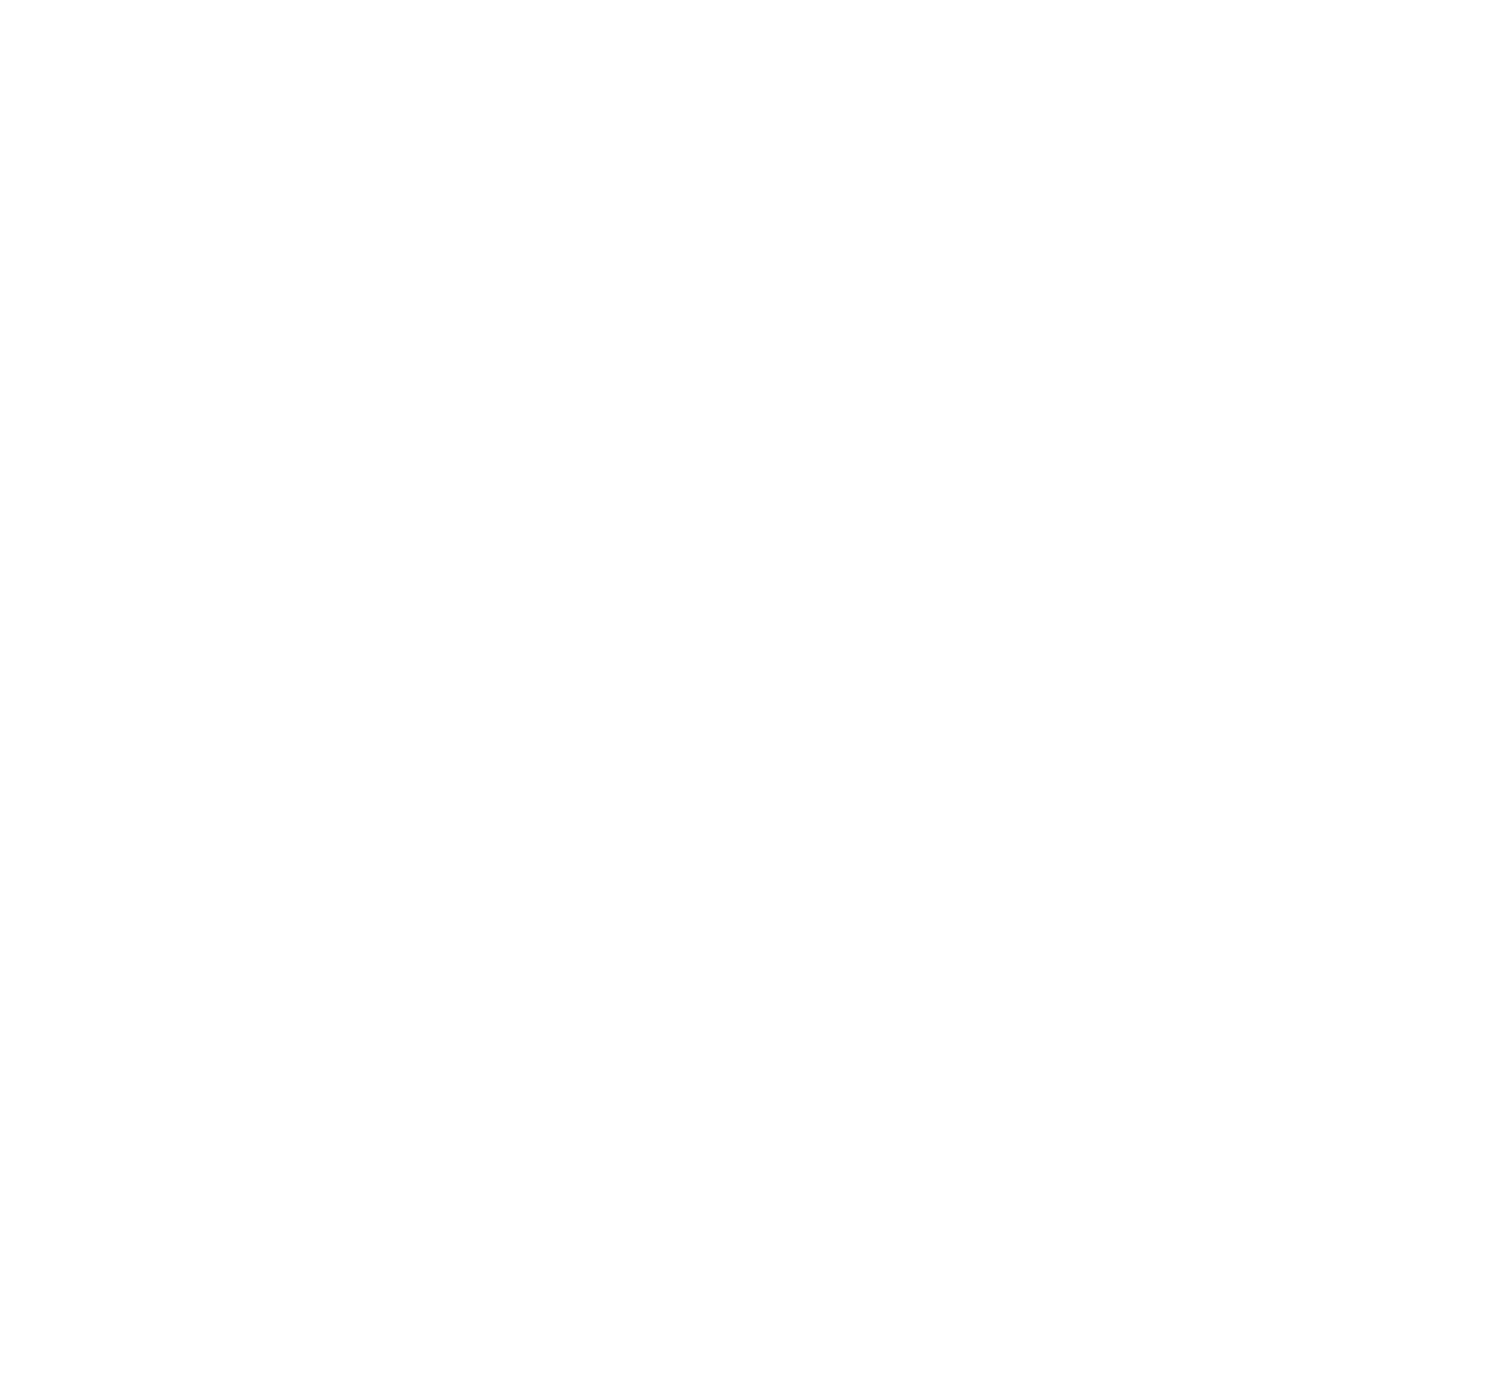 Century Road Club Association